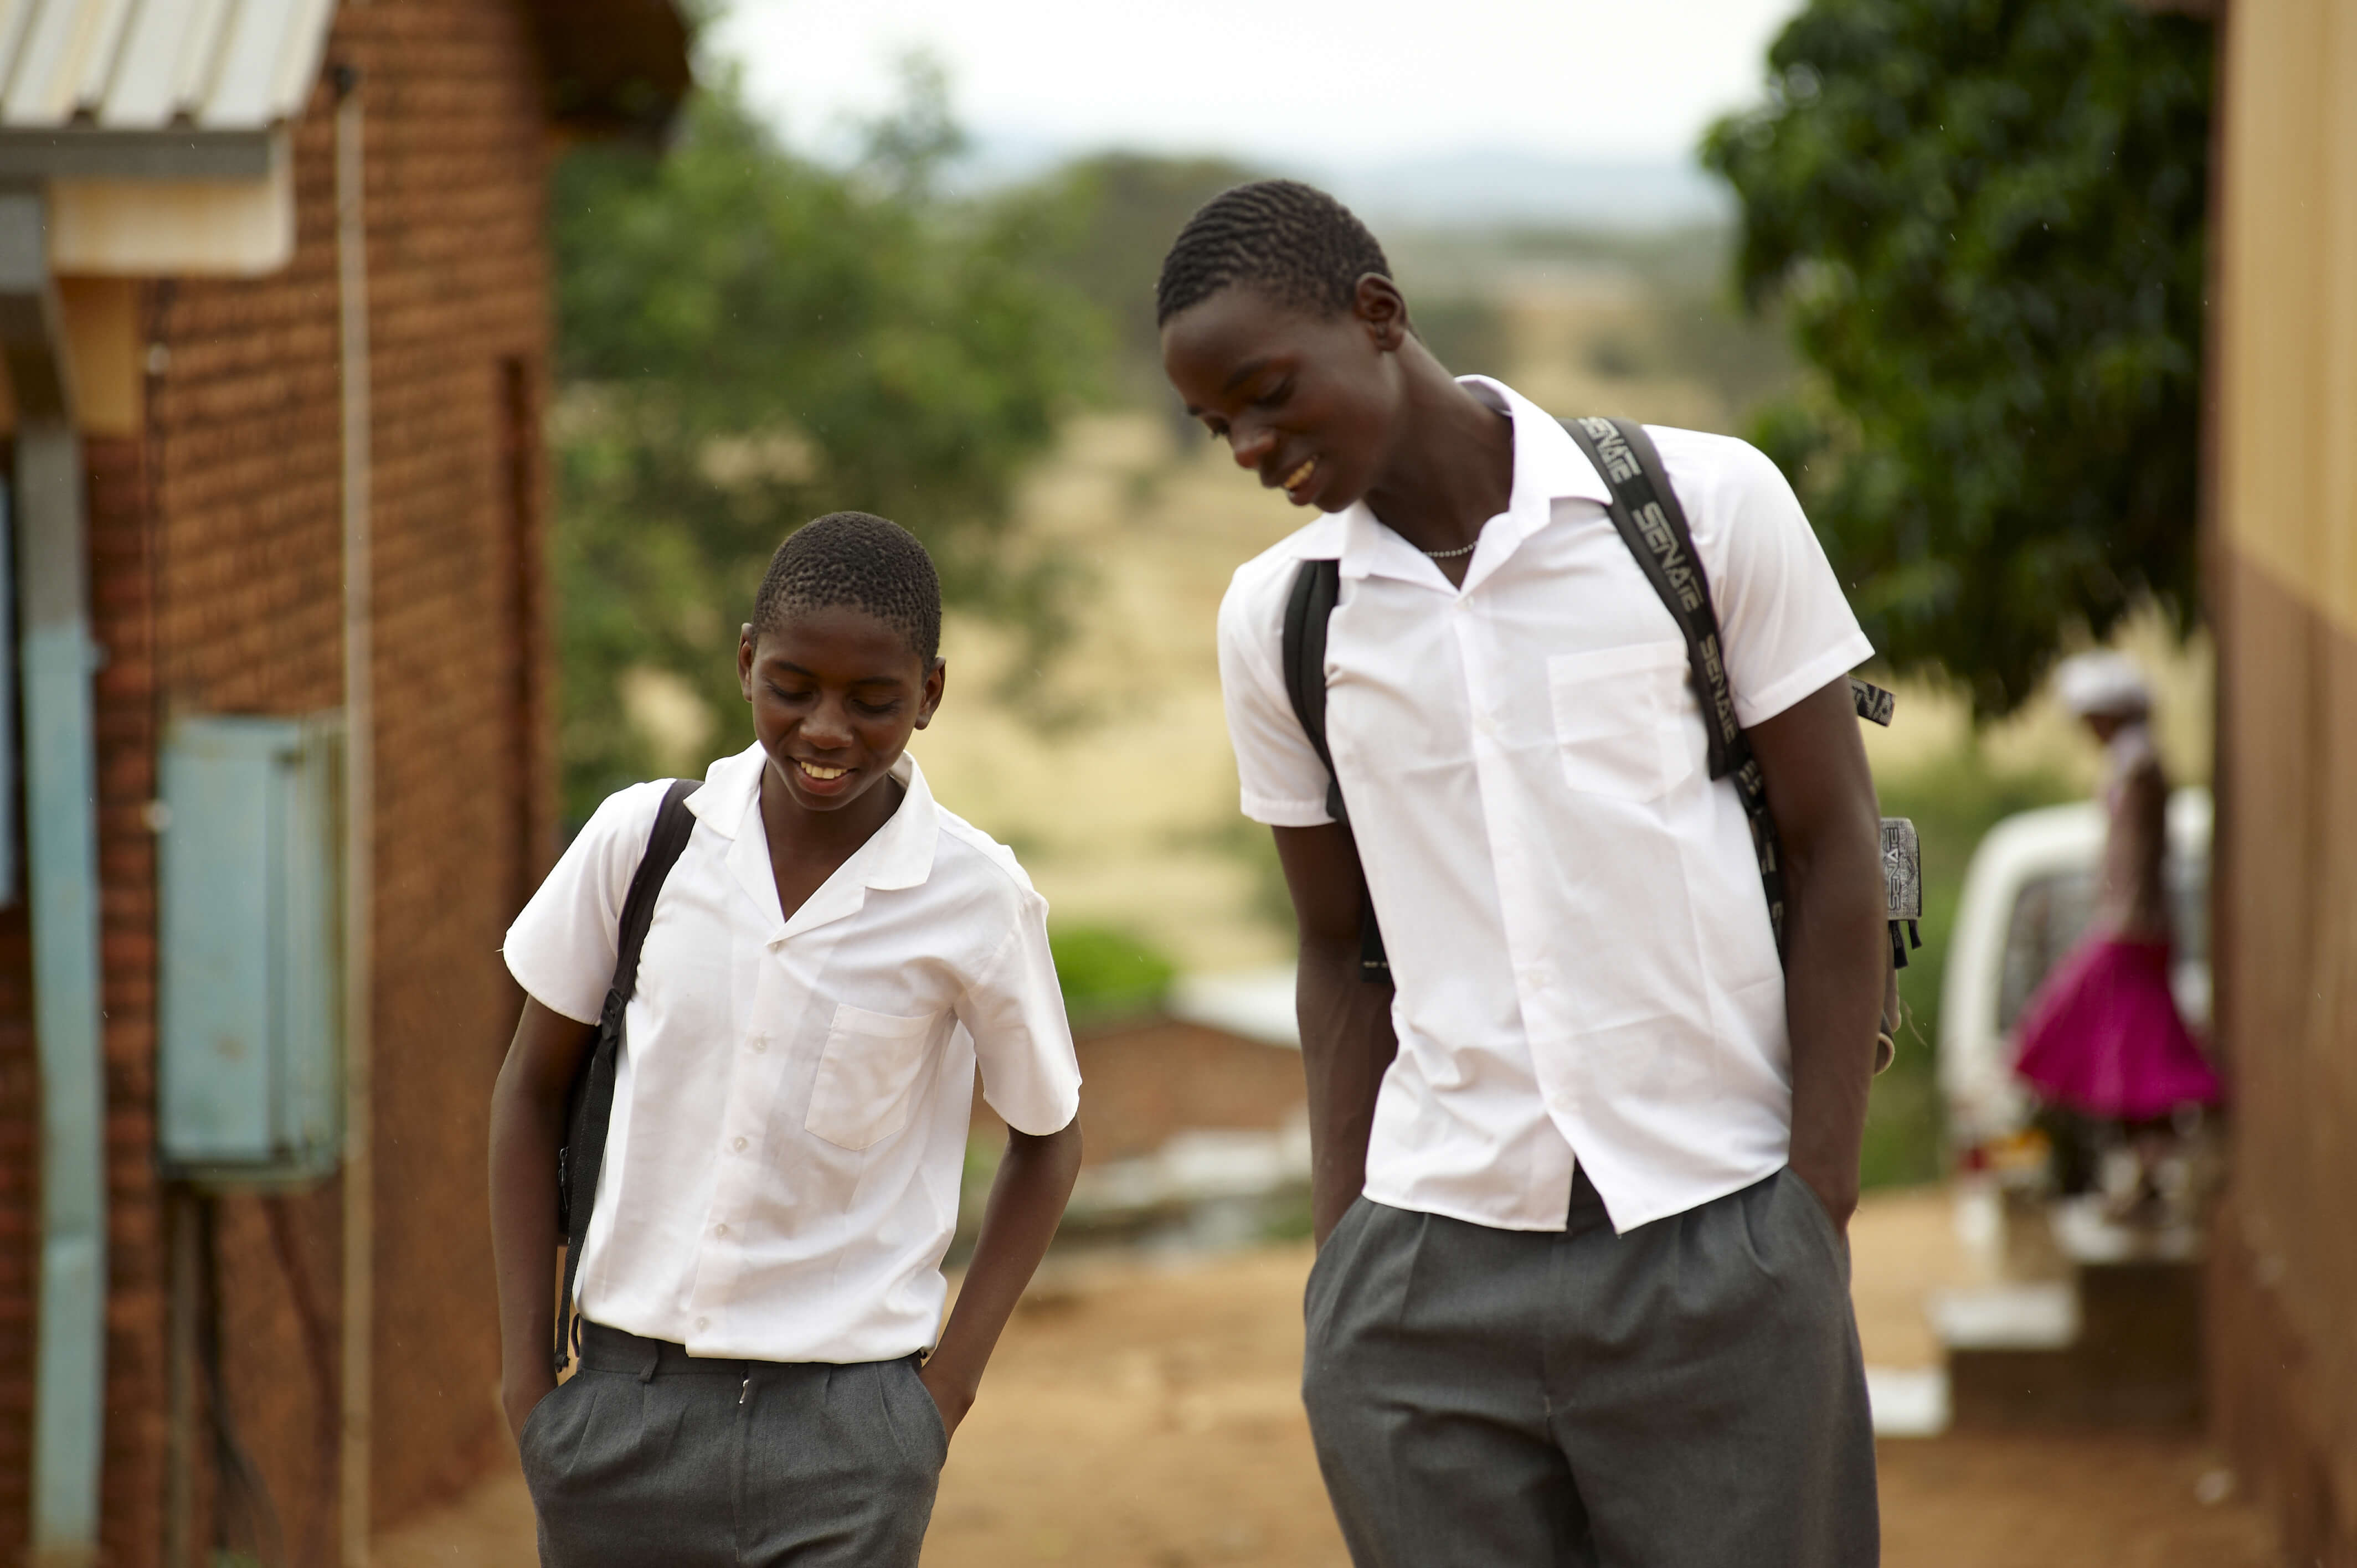 Ground-breaking South African Judgment on the Right to a Basic Education